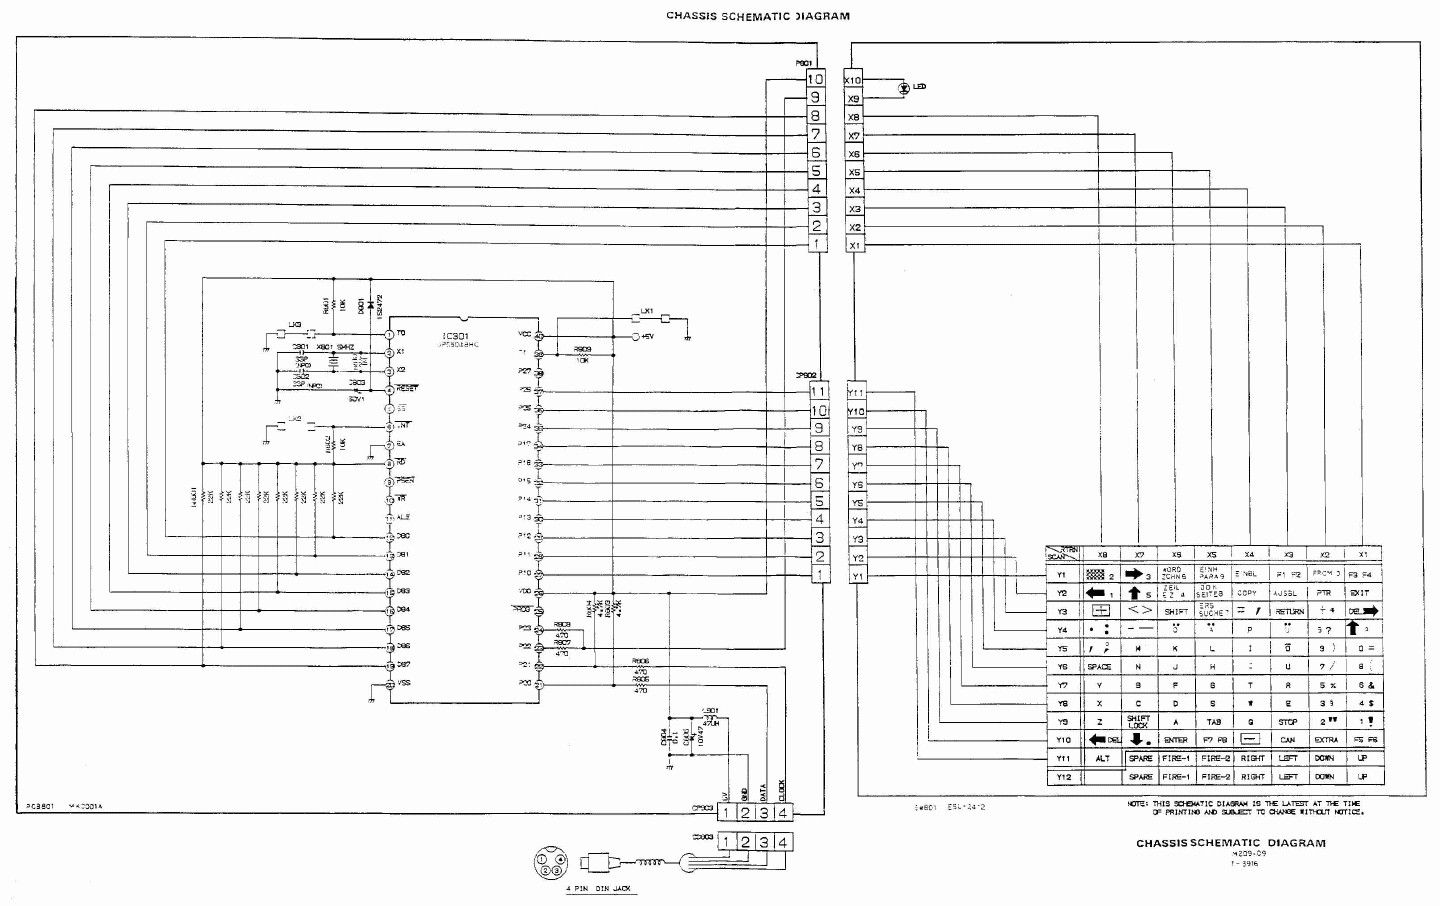 Circuit Diagram Keyboard Download gratuito Schemi di cablaggio Schematics  Striking